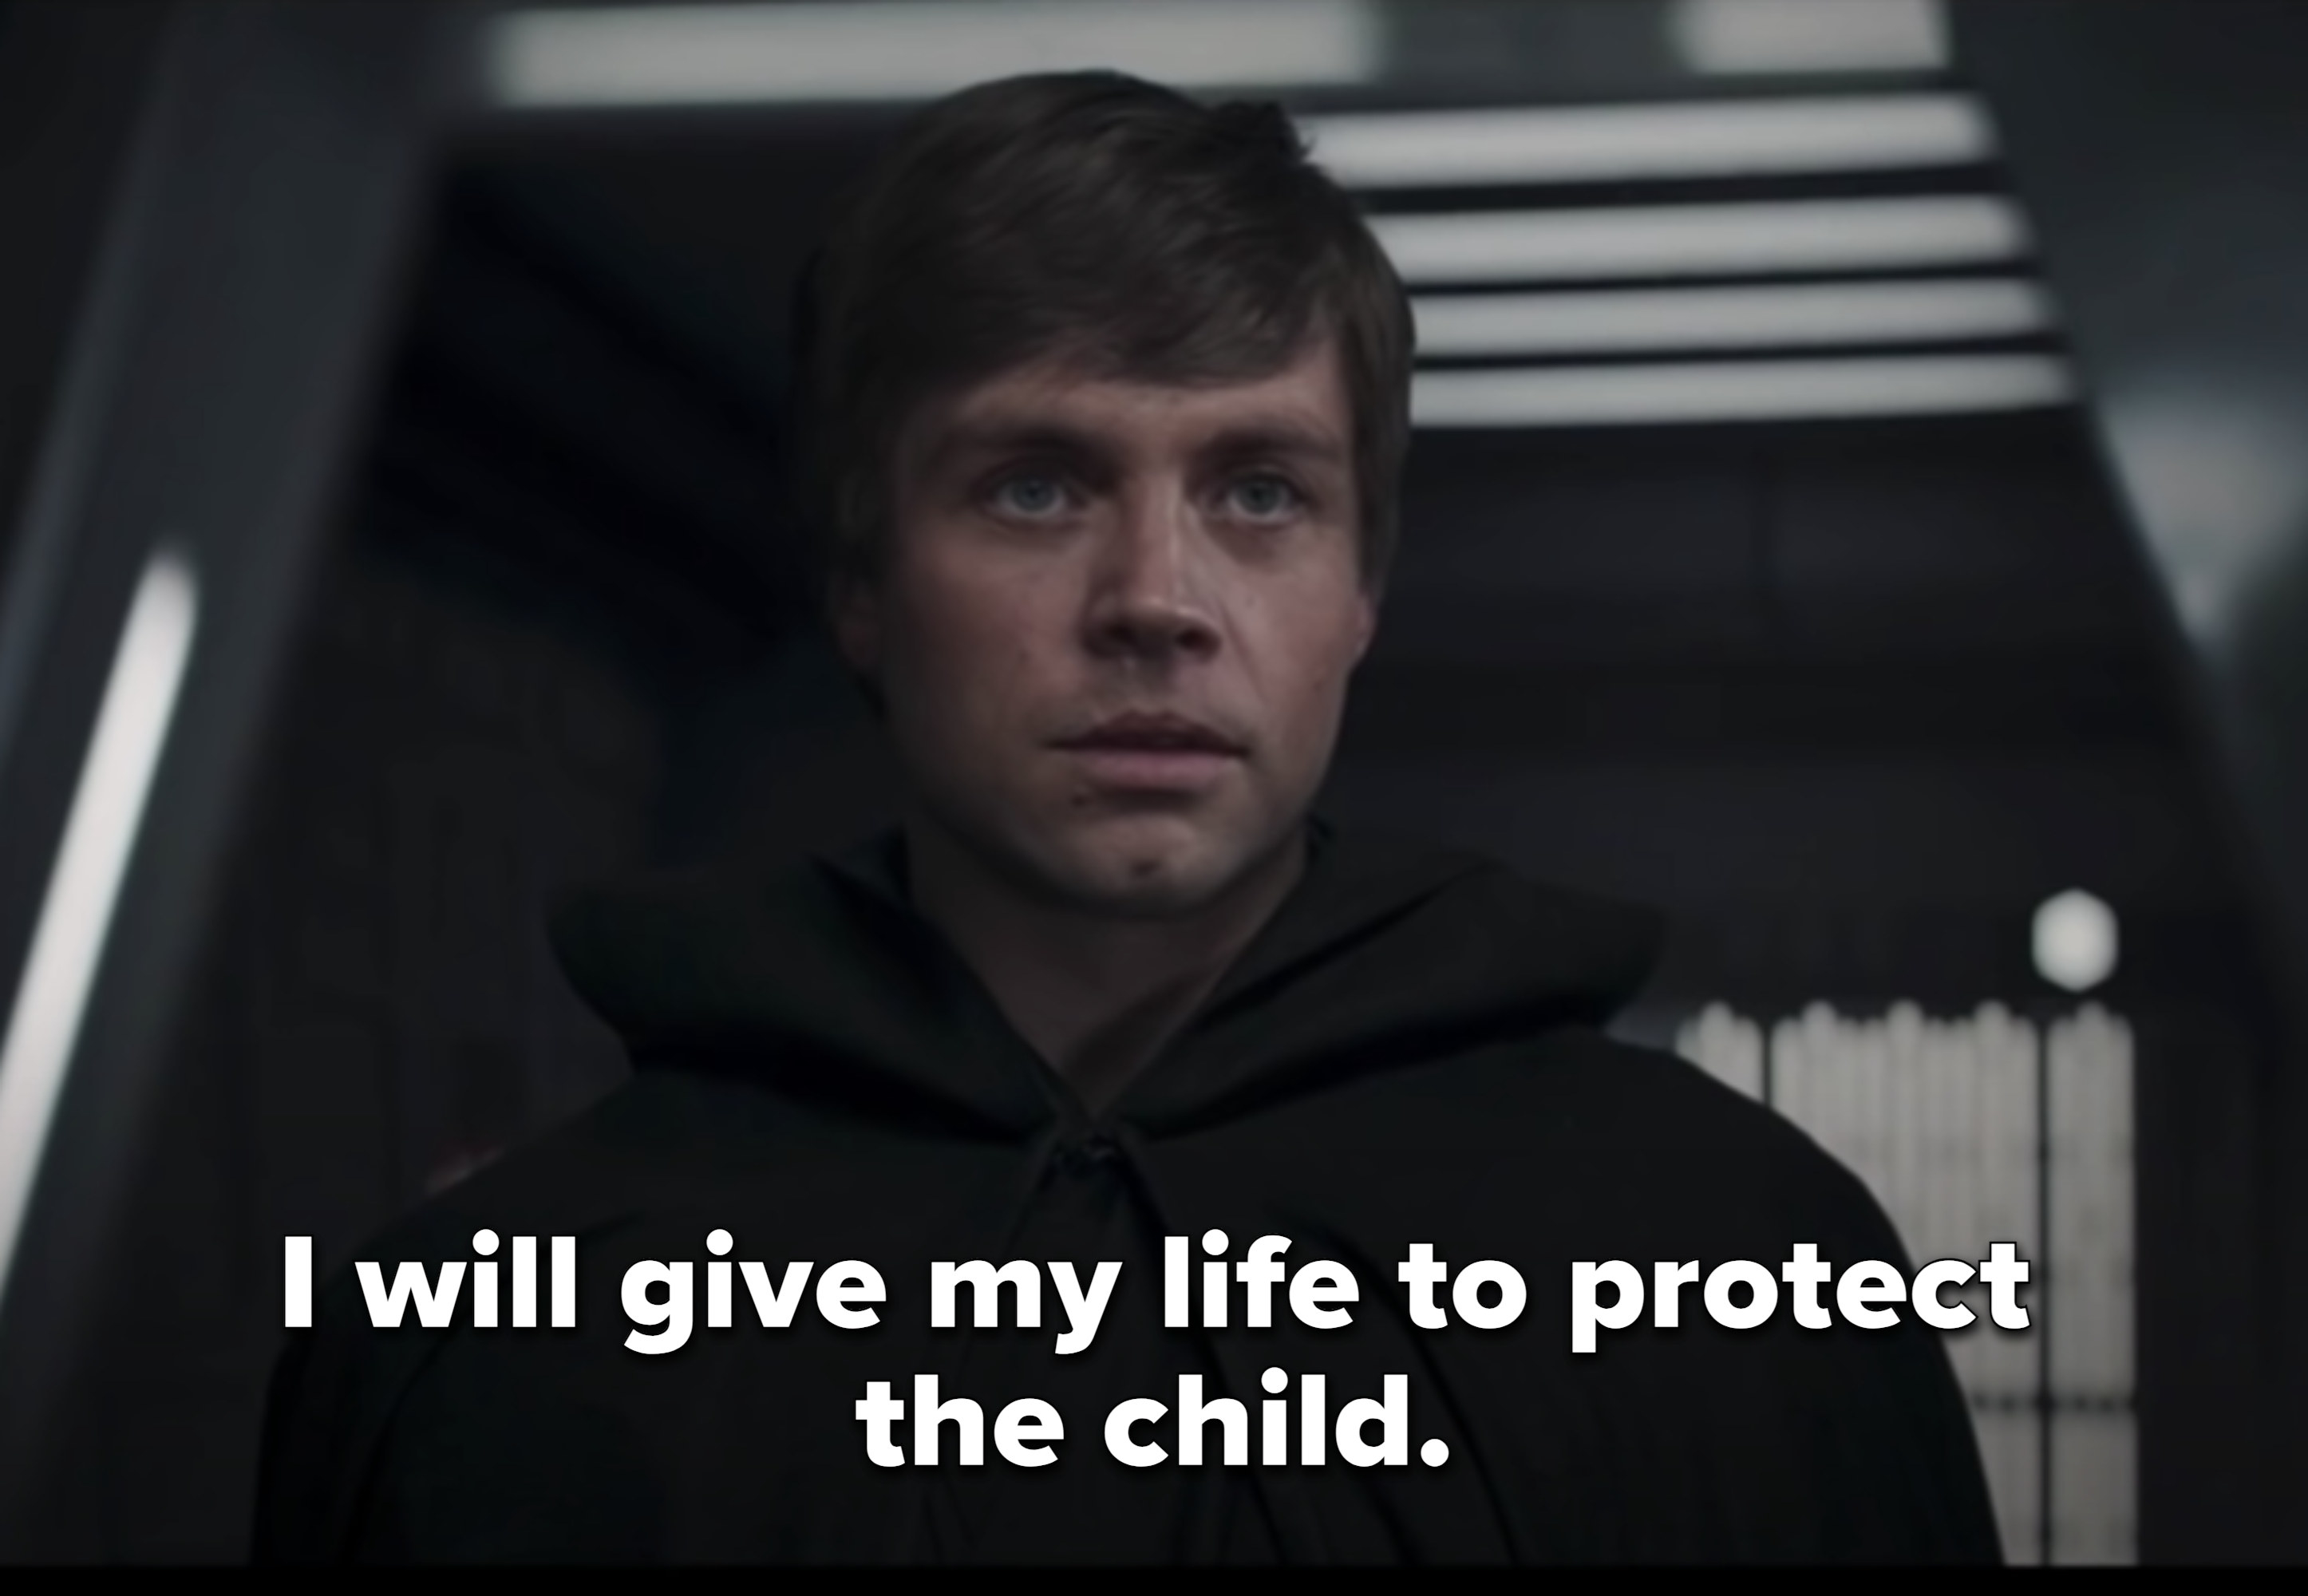 Luke saying he'll give his life to protect the child